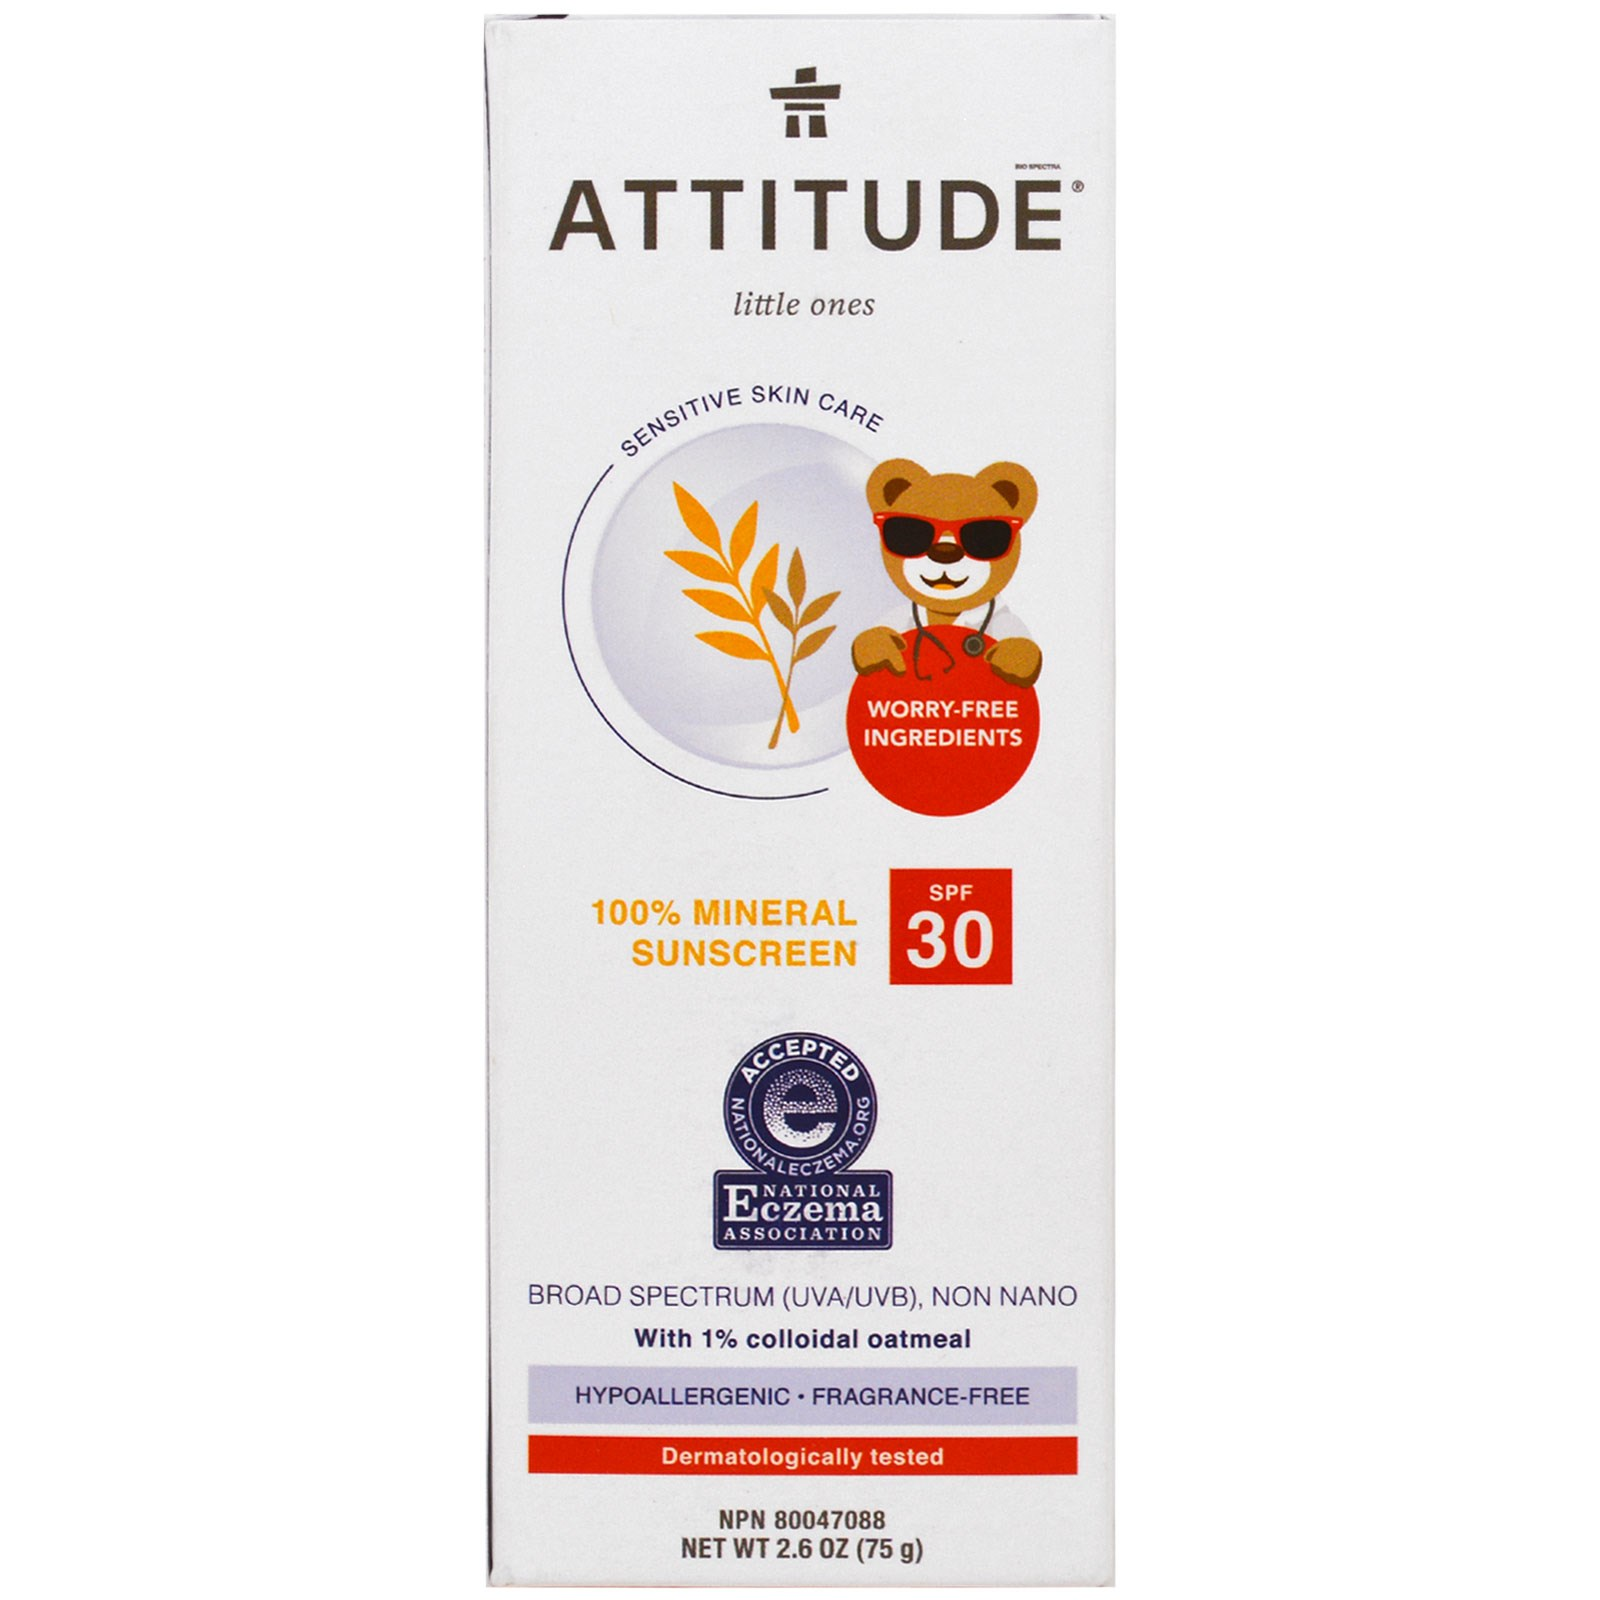 Attitude Baby Sunscreen Spf 30 - 100% Mineral - Fragrance Free